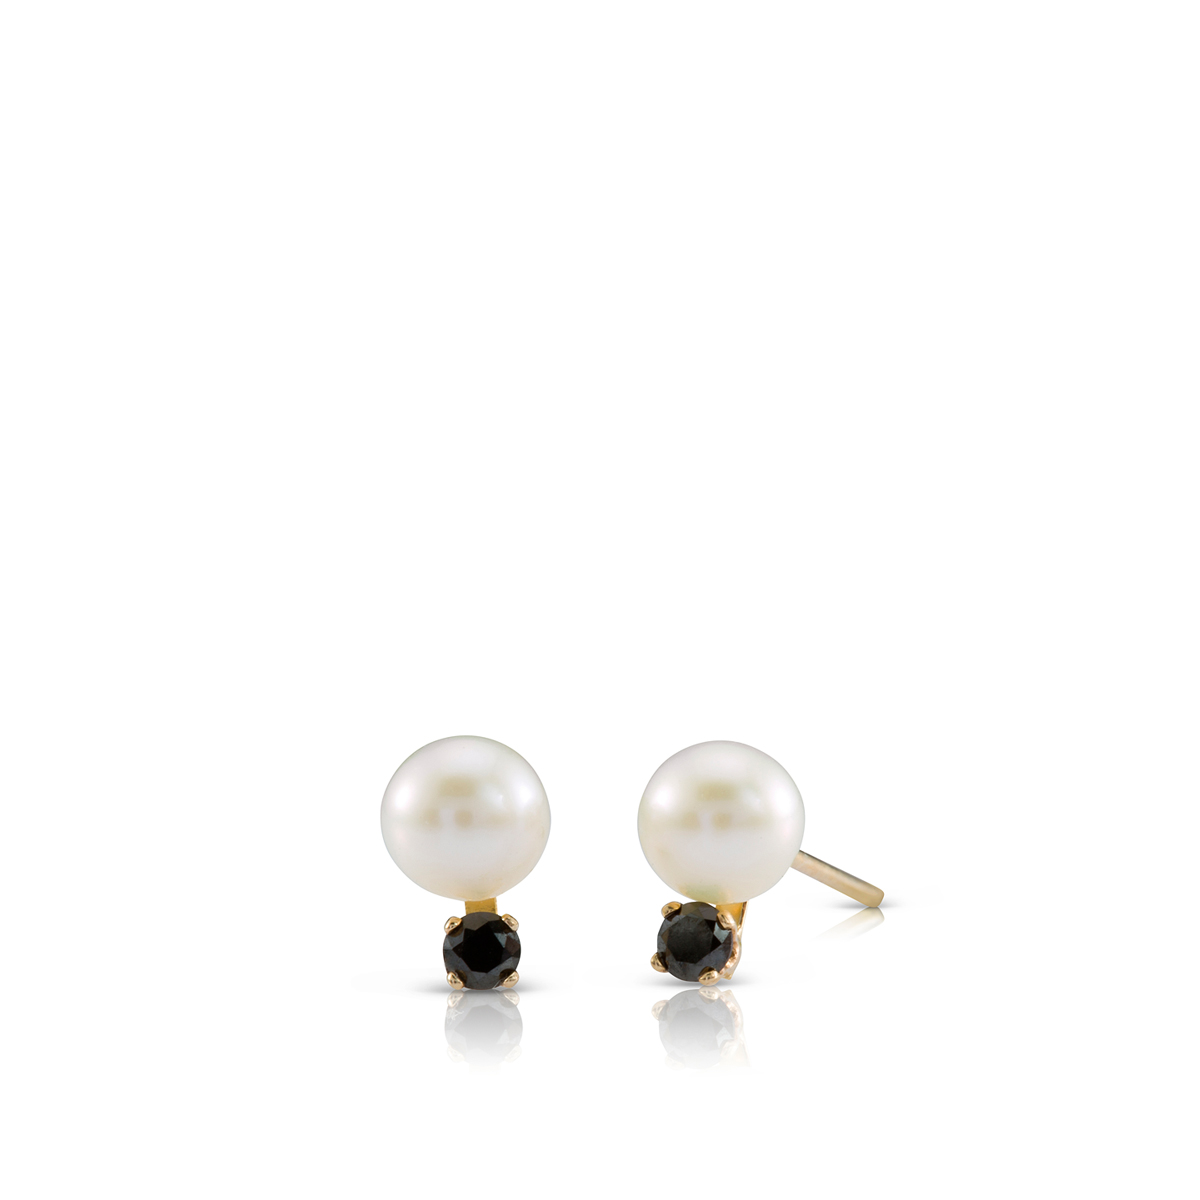 Stud black diamond and pearls earrings